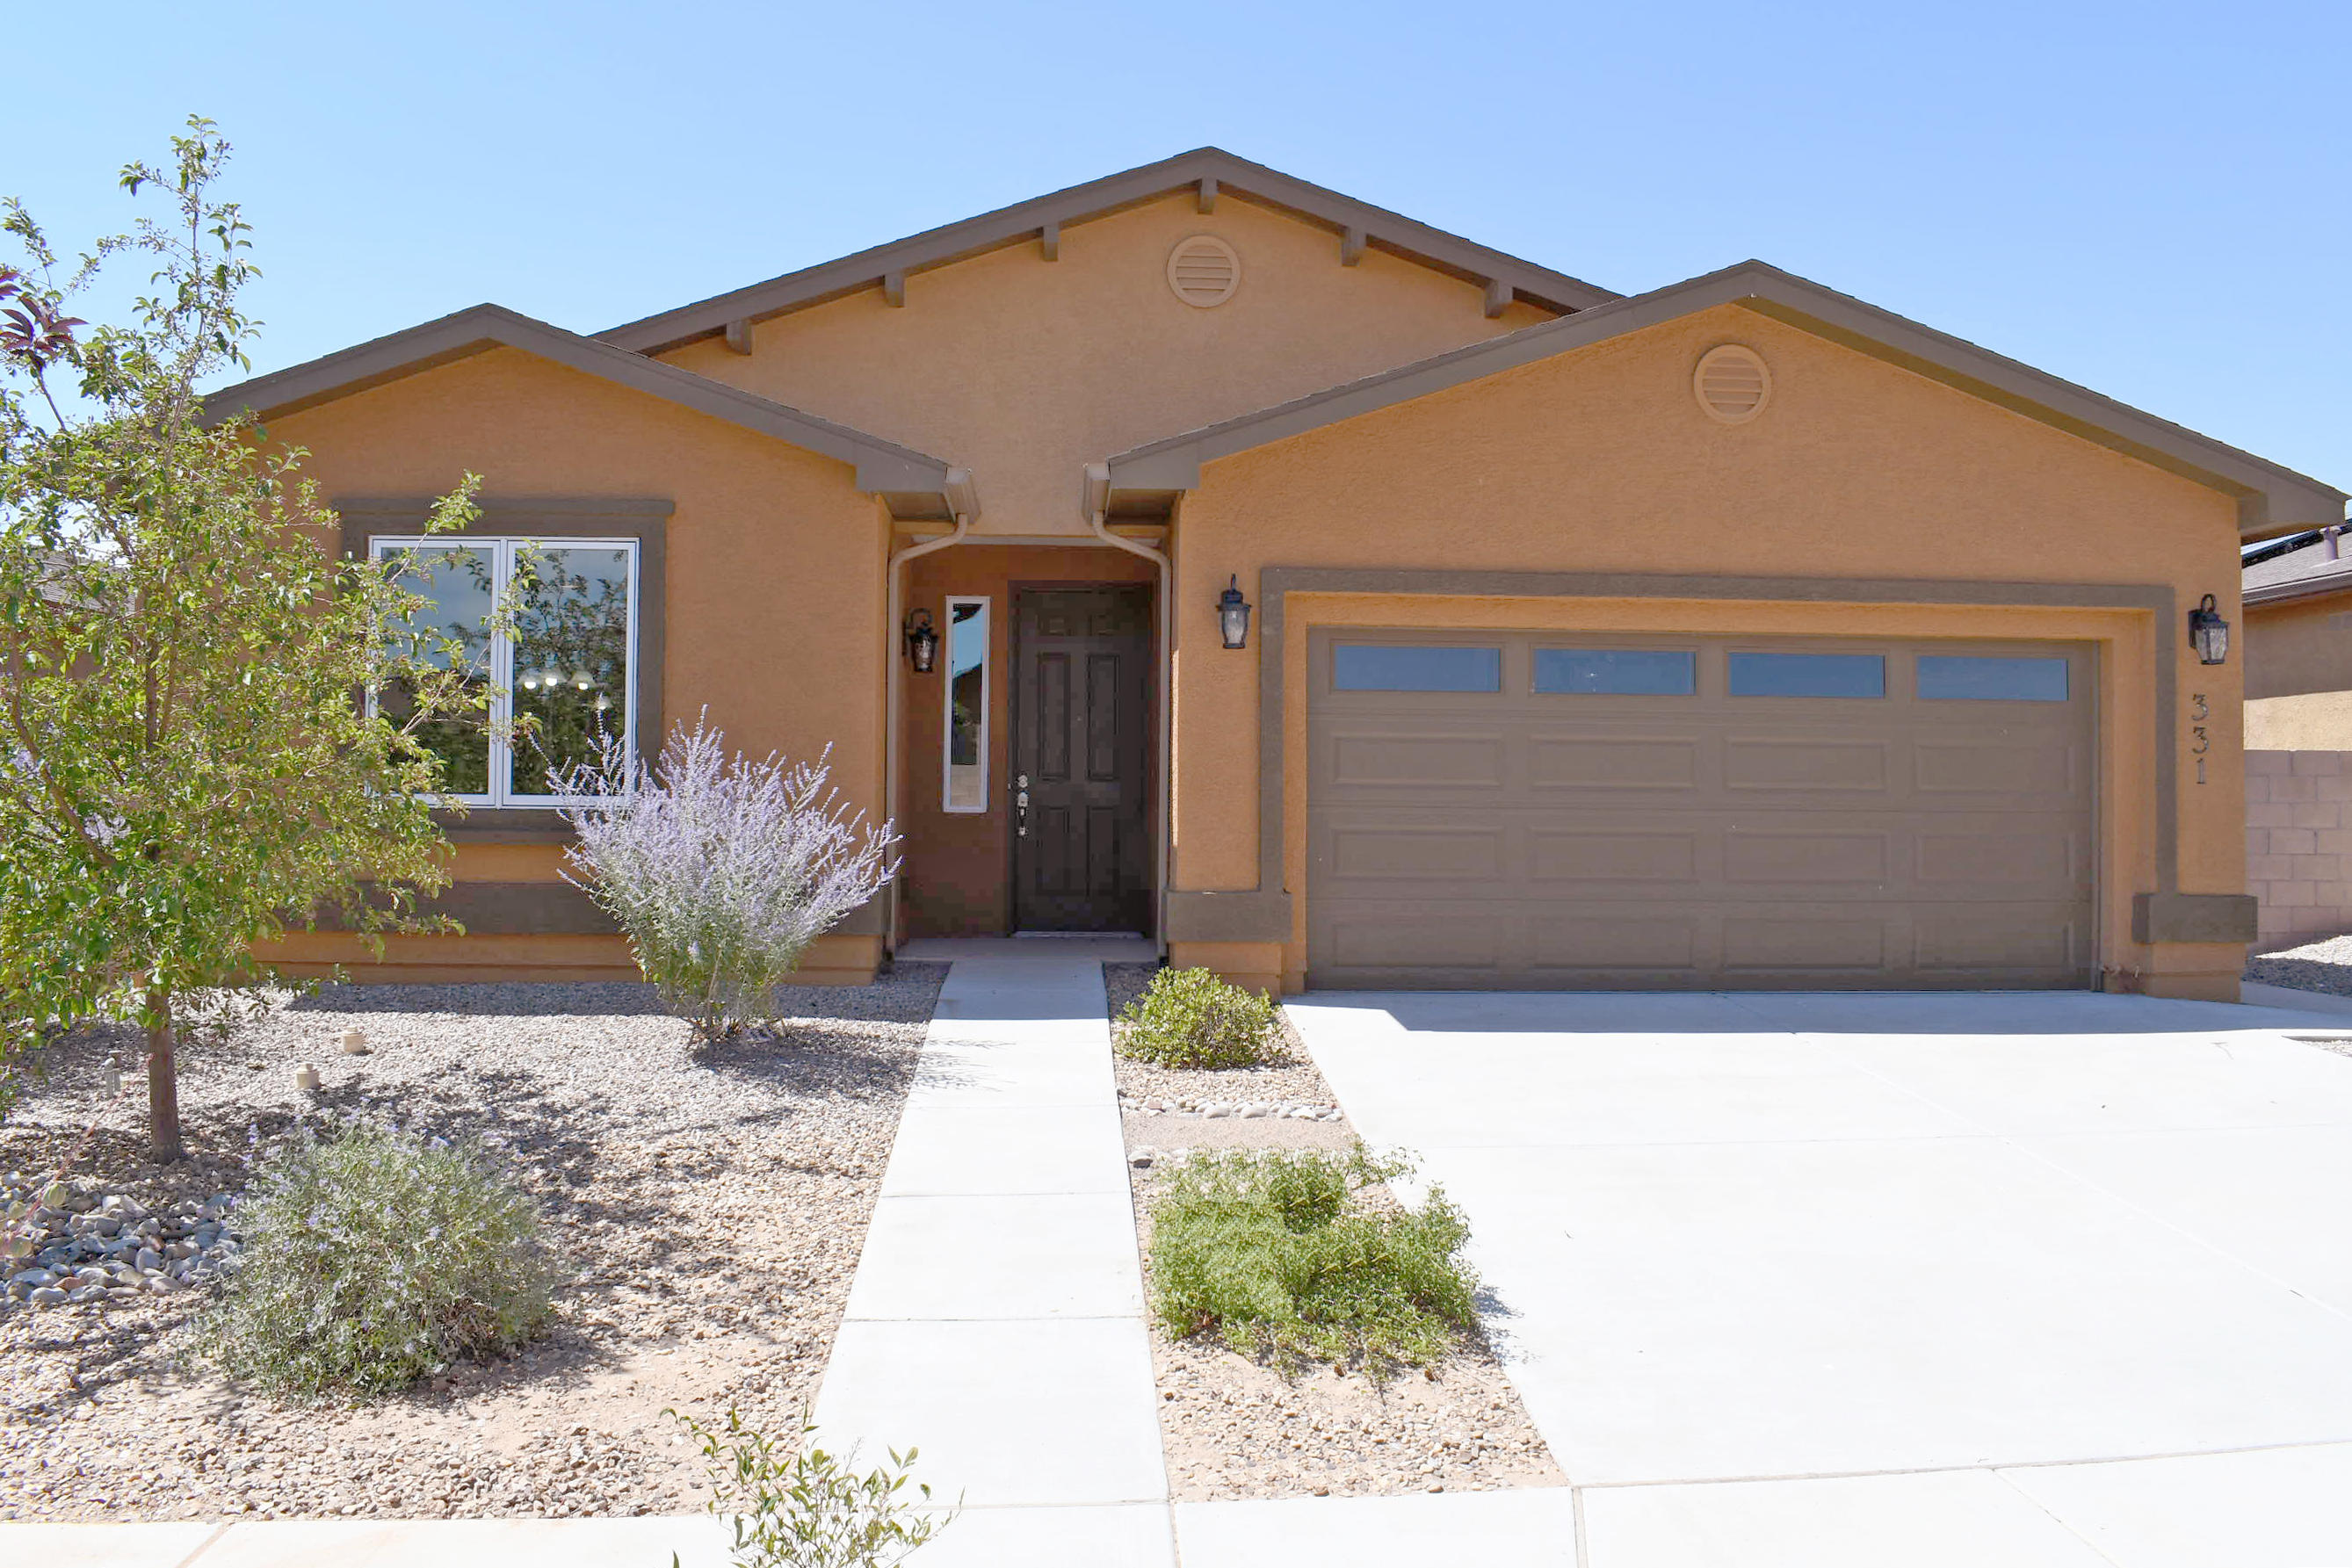 This is a great Jemez (1715 sq. ft.) plan! It's an open concept w/almost no wasted space: spacious master w/window box option gives you a little reading area in the sunny window, guest bedroom & great office too! Entire home has beautiful upgraded wood windows & patio door!! Kitchen w/gorgeous Alder cabinets (in bathrooms also), hi bar, pendant lights, stainless appliances (gas stove) & upgraded granite w/tile backsplash. Fully insulated garage & garage door w/addt'l outlets. And this is an extra deep lot that's already fully landscaped. Such a great price you still have room to make it yours and still save thousands over new construction without the wait!! Don't forget all the great Jubilee amenities: 10,000+ sq. ft. clubhouse, pool, tennis/pickle ball court, & LOTS more!!